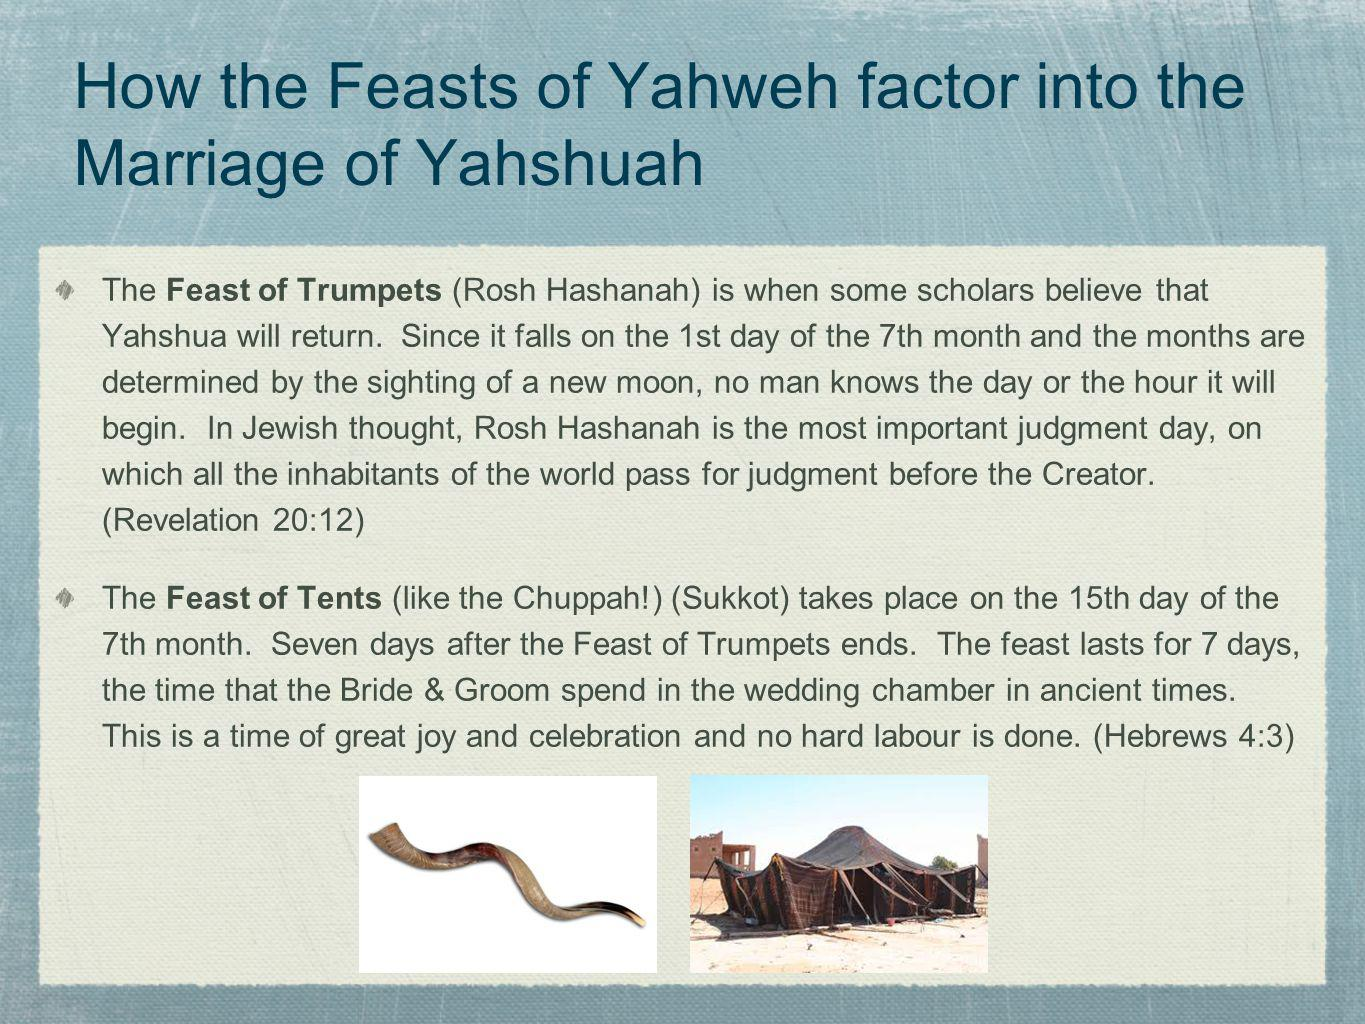 How the Feasts of Yahweh factor into the Marriage of Yahshuah The Feast of Trumpets (Rosh Hashanah) is when some scholars believe that Yahshua will re